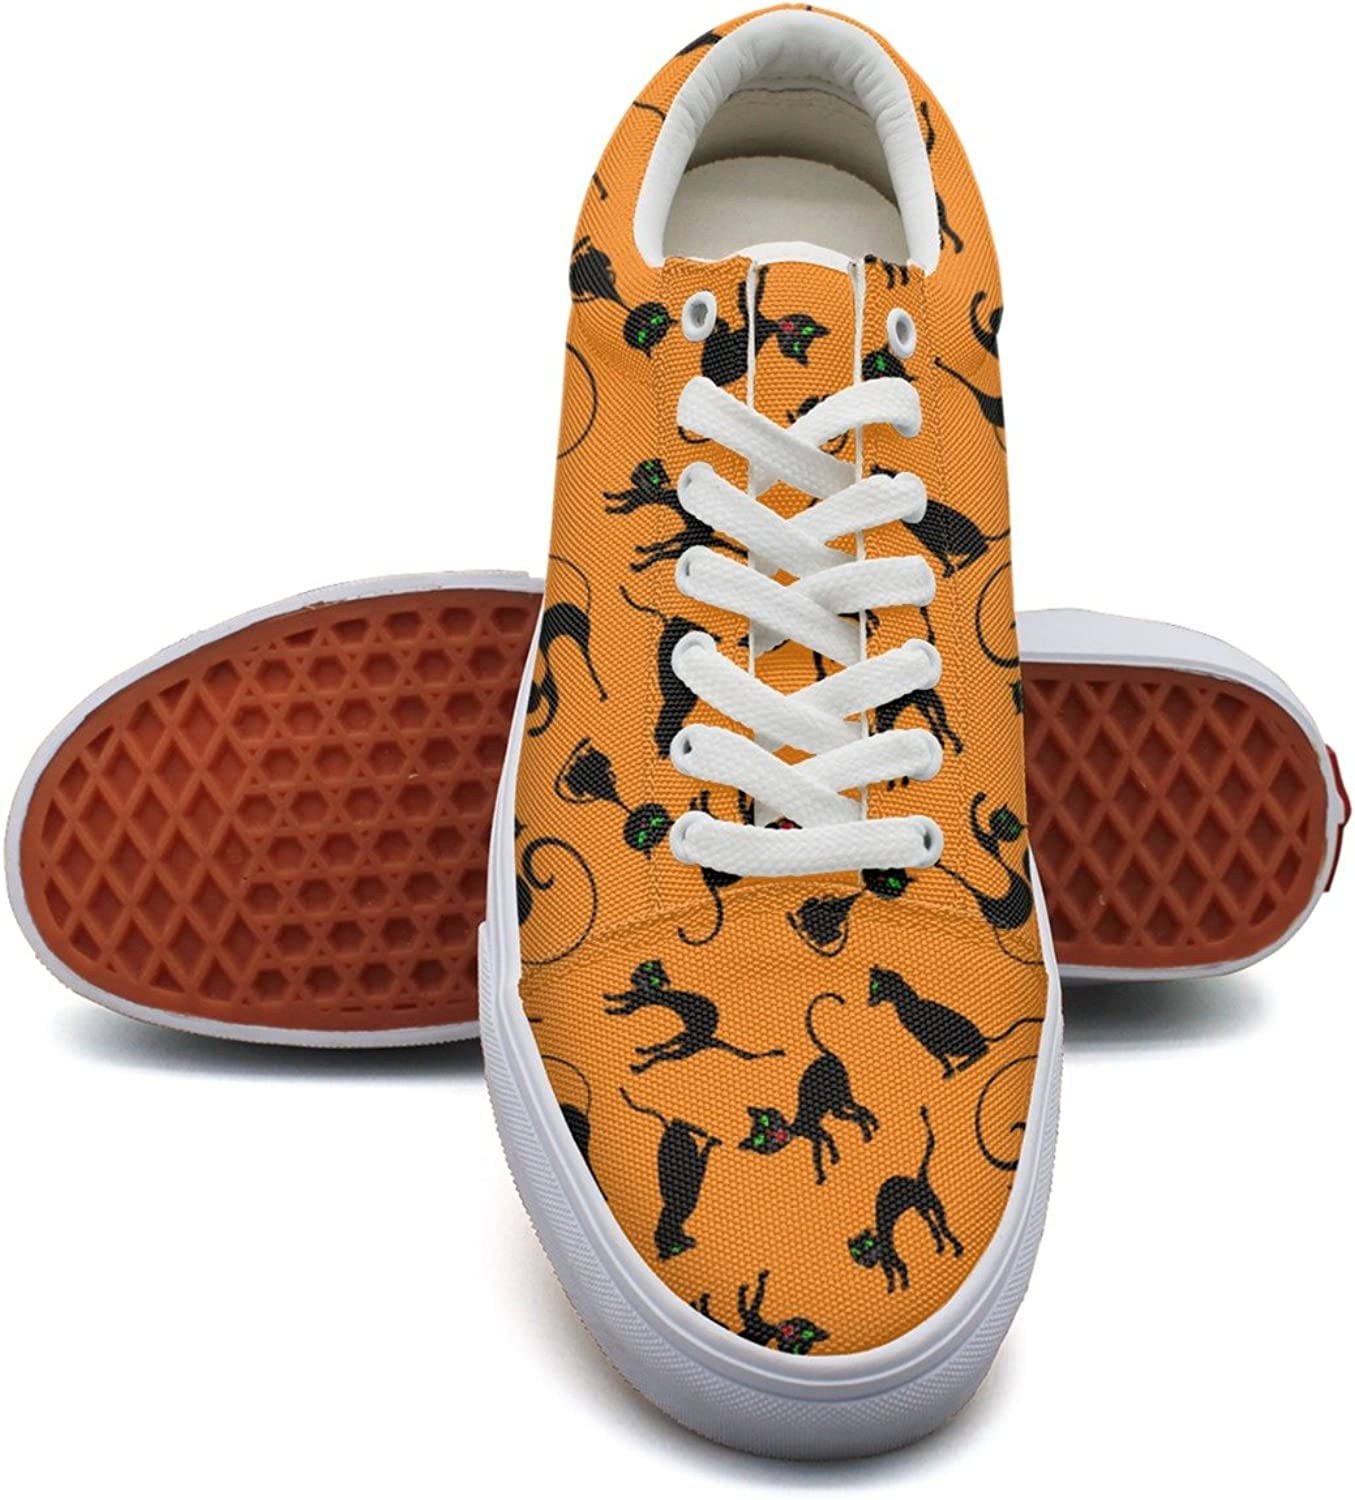 Feenfling Black Cats Bengal Cat orange Background Womens Light Canvas Boat shoes Low Top Hip Hop Tennis shoes for Women's